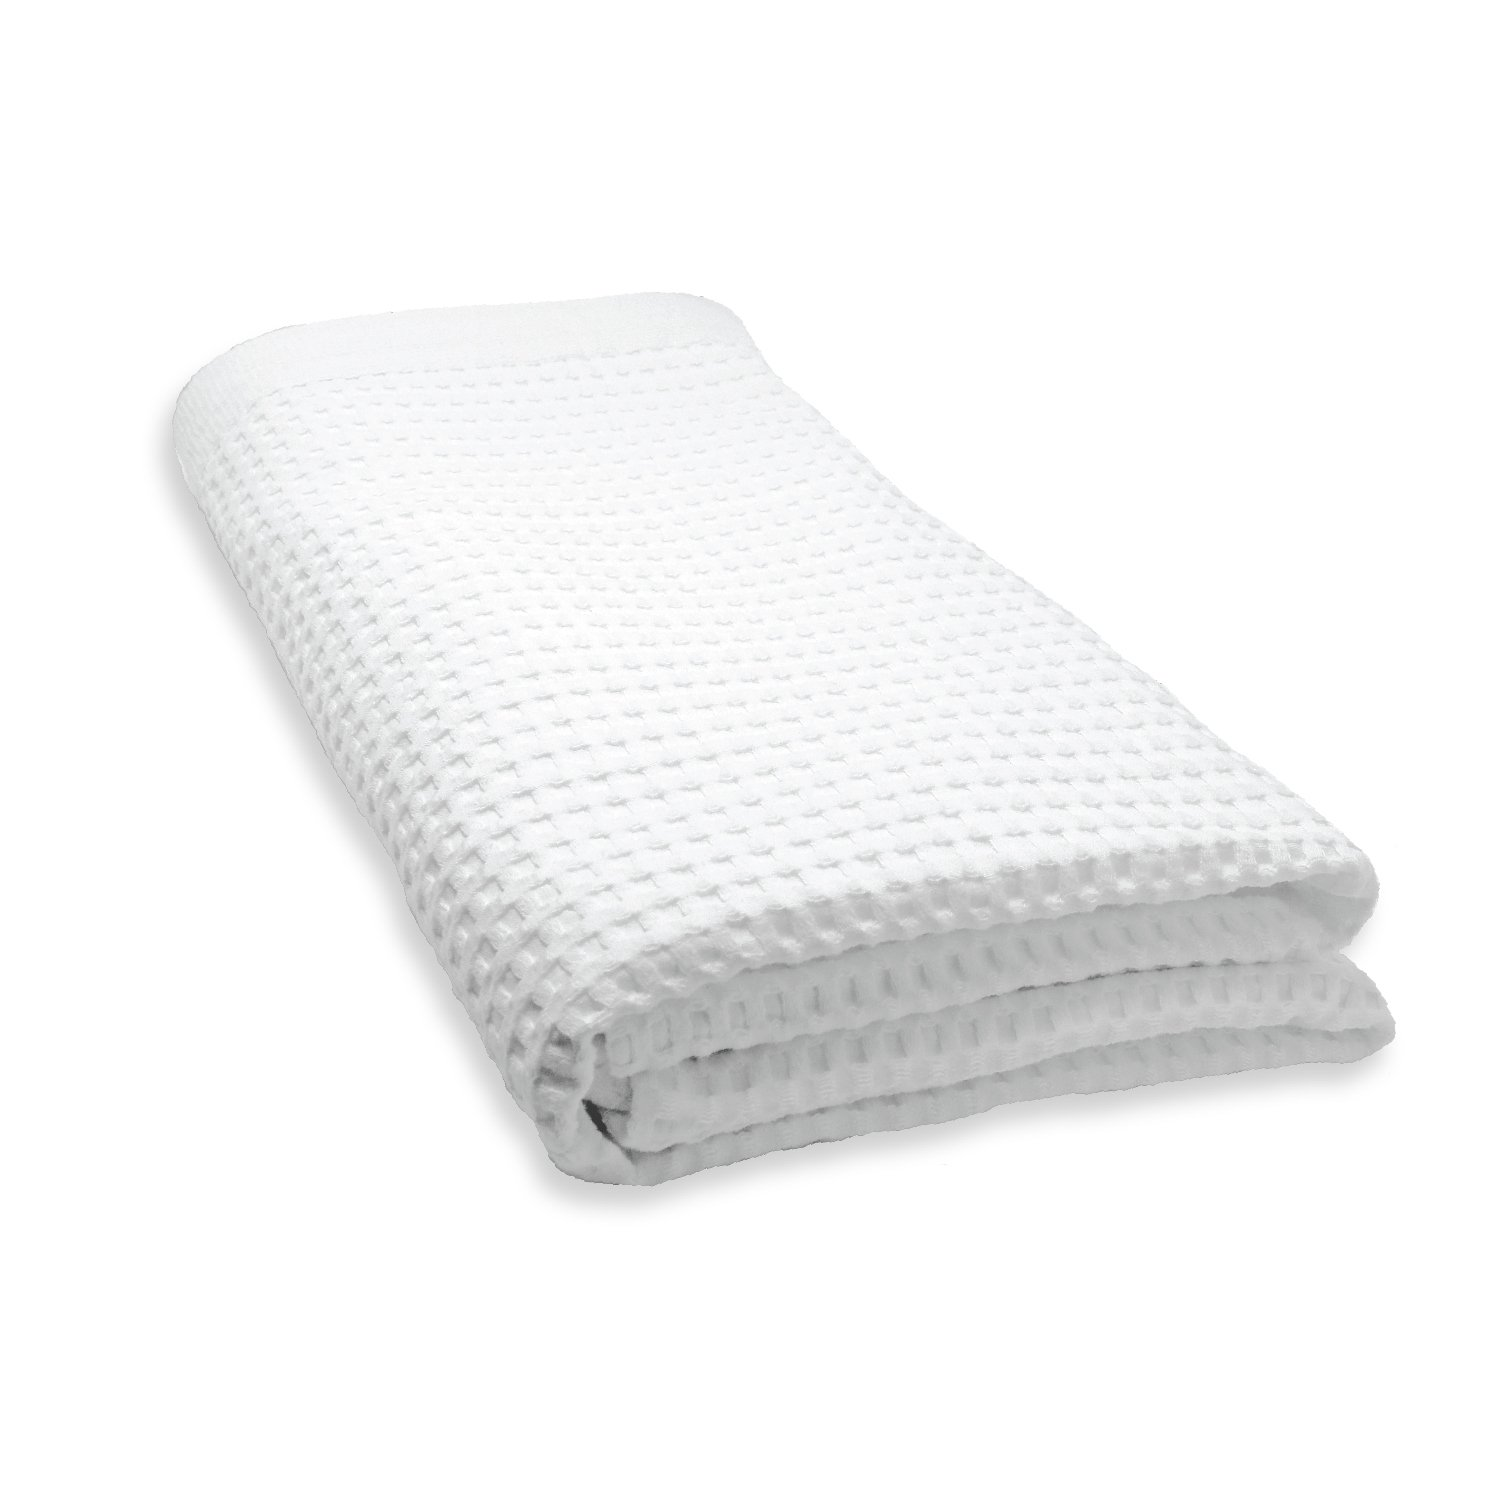 Gilden Tree 100% Natural Cotton Lattice Waffle Weave Bath Sheet (White) MD 555-W